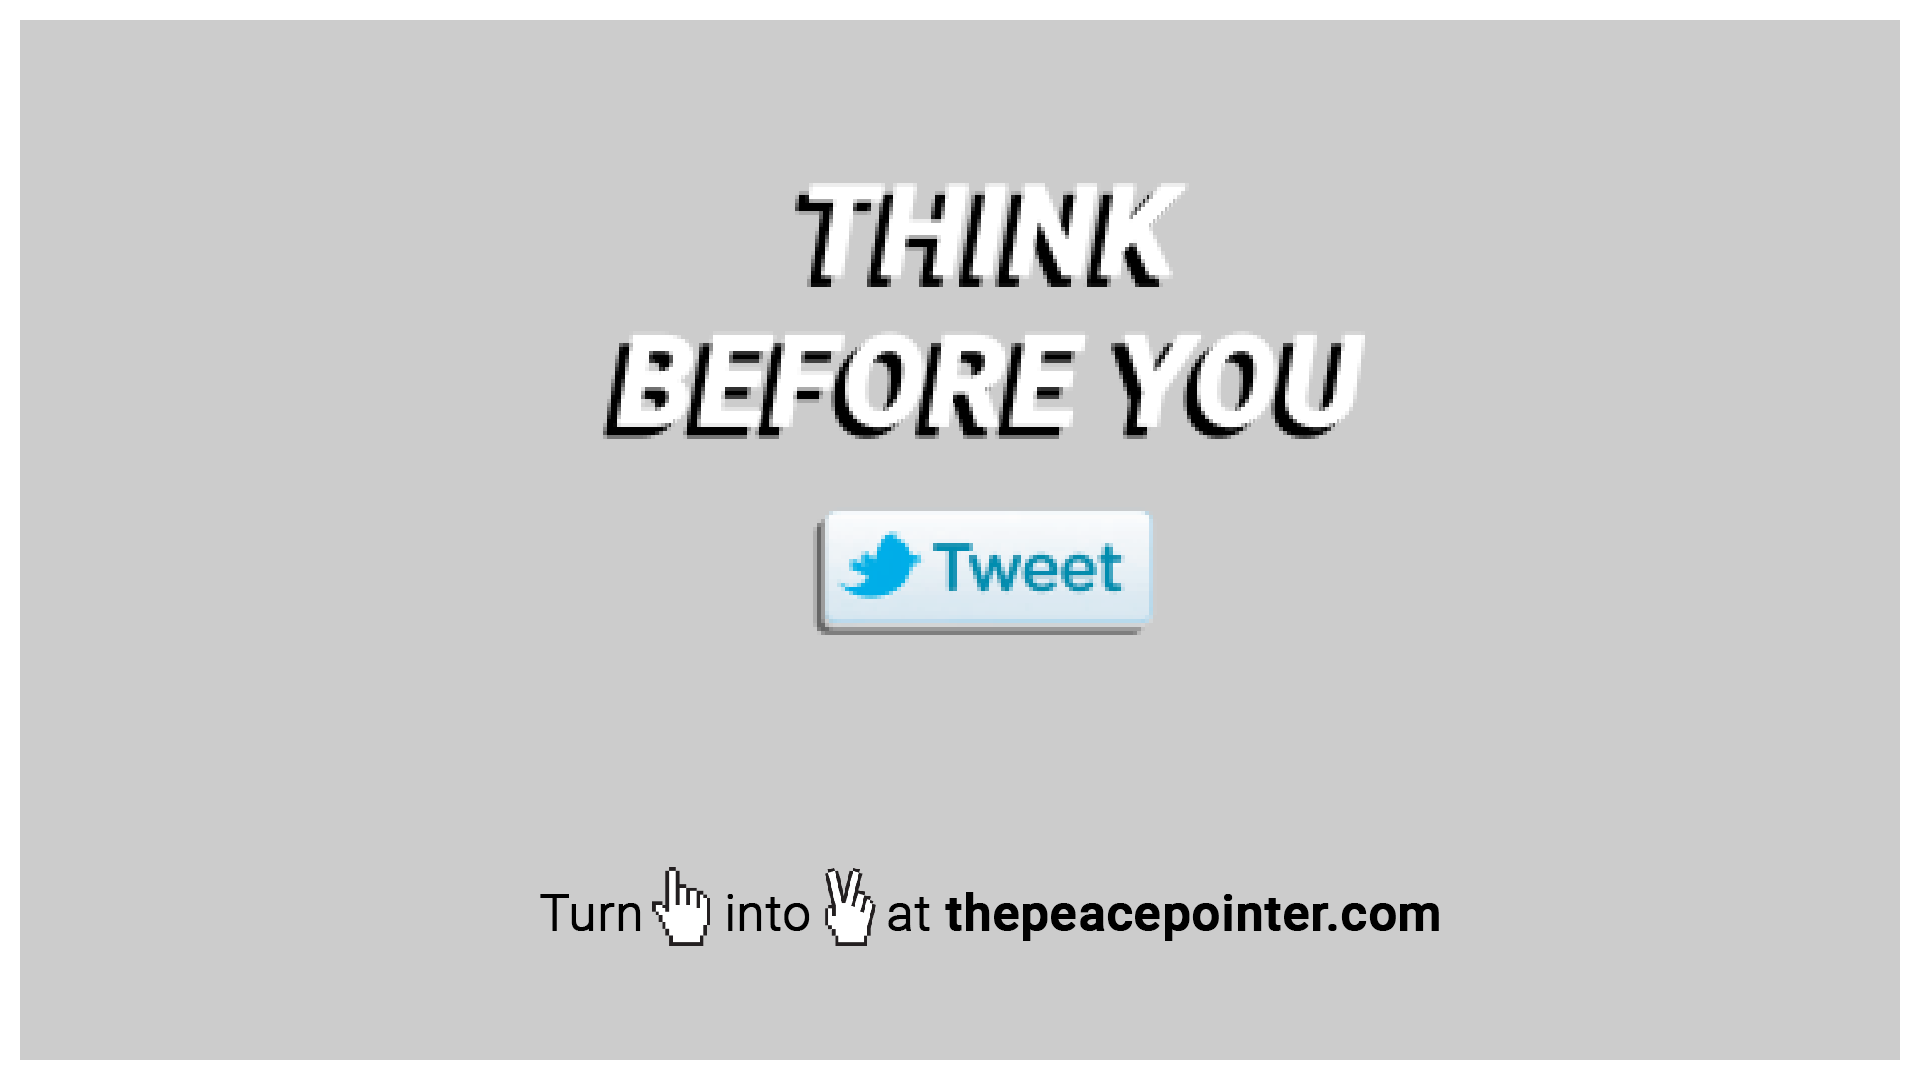 the_peace_pointer_tweet_(wide).png